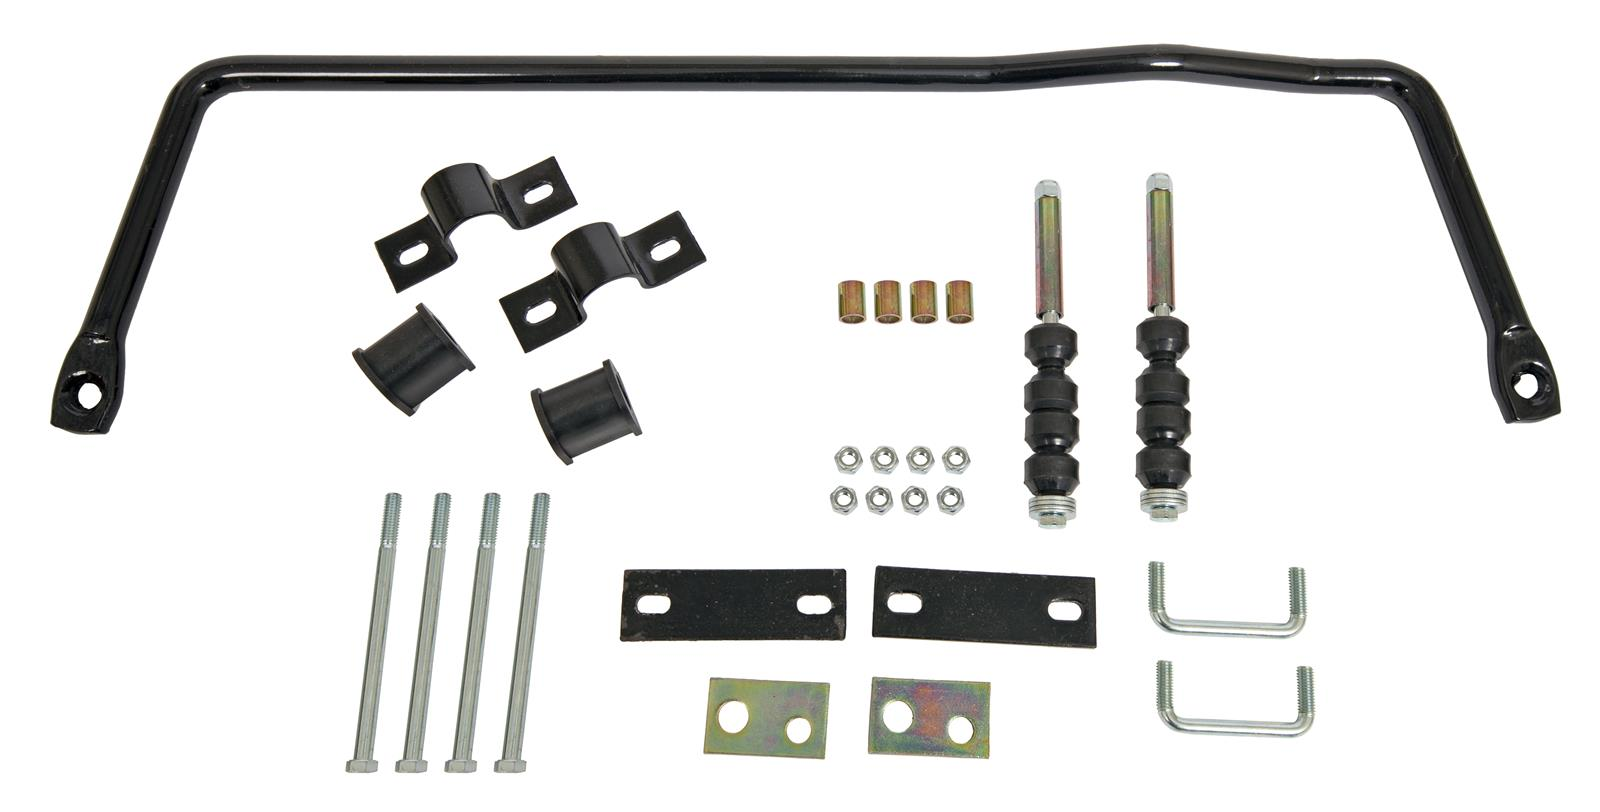 Diameter Fits Jeep Kit Addco 684 Sway Bar Rear Steel Black Powdercoated 1 in